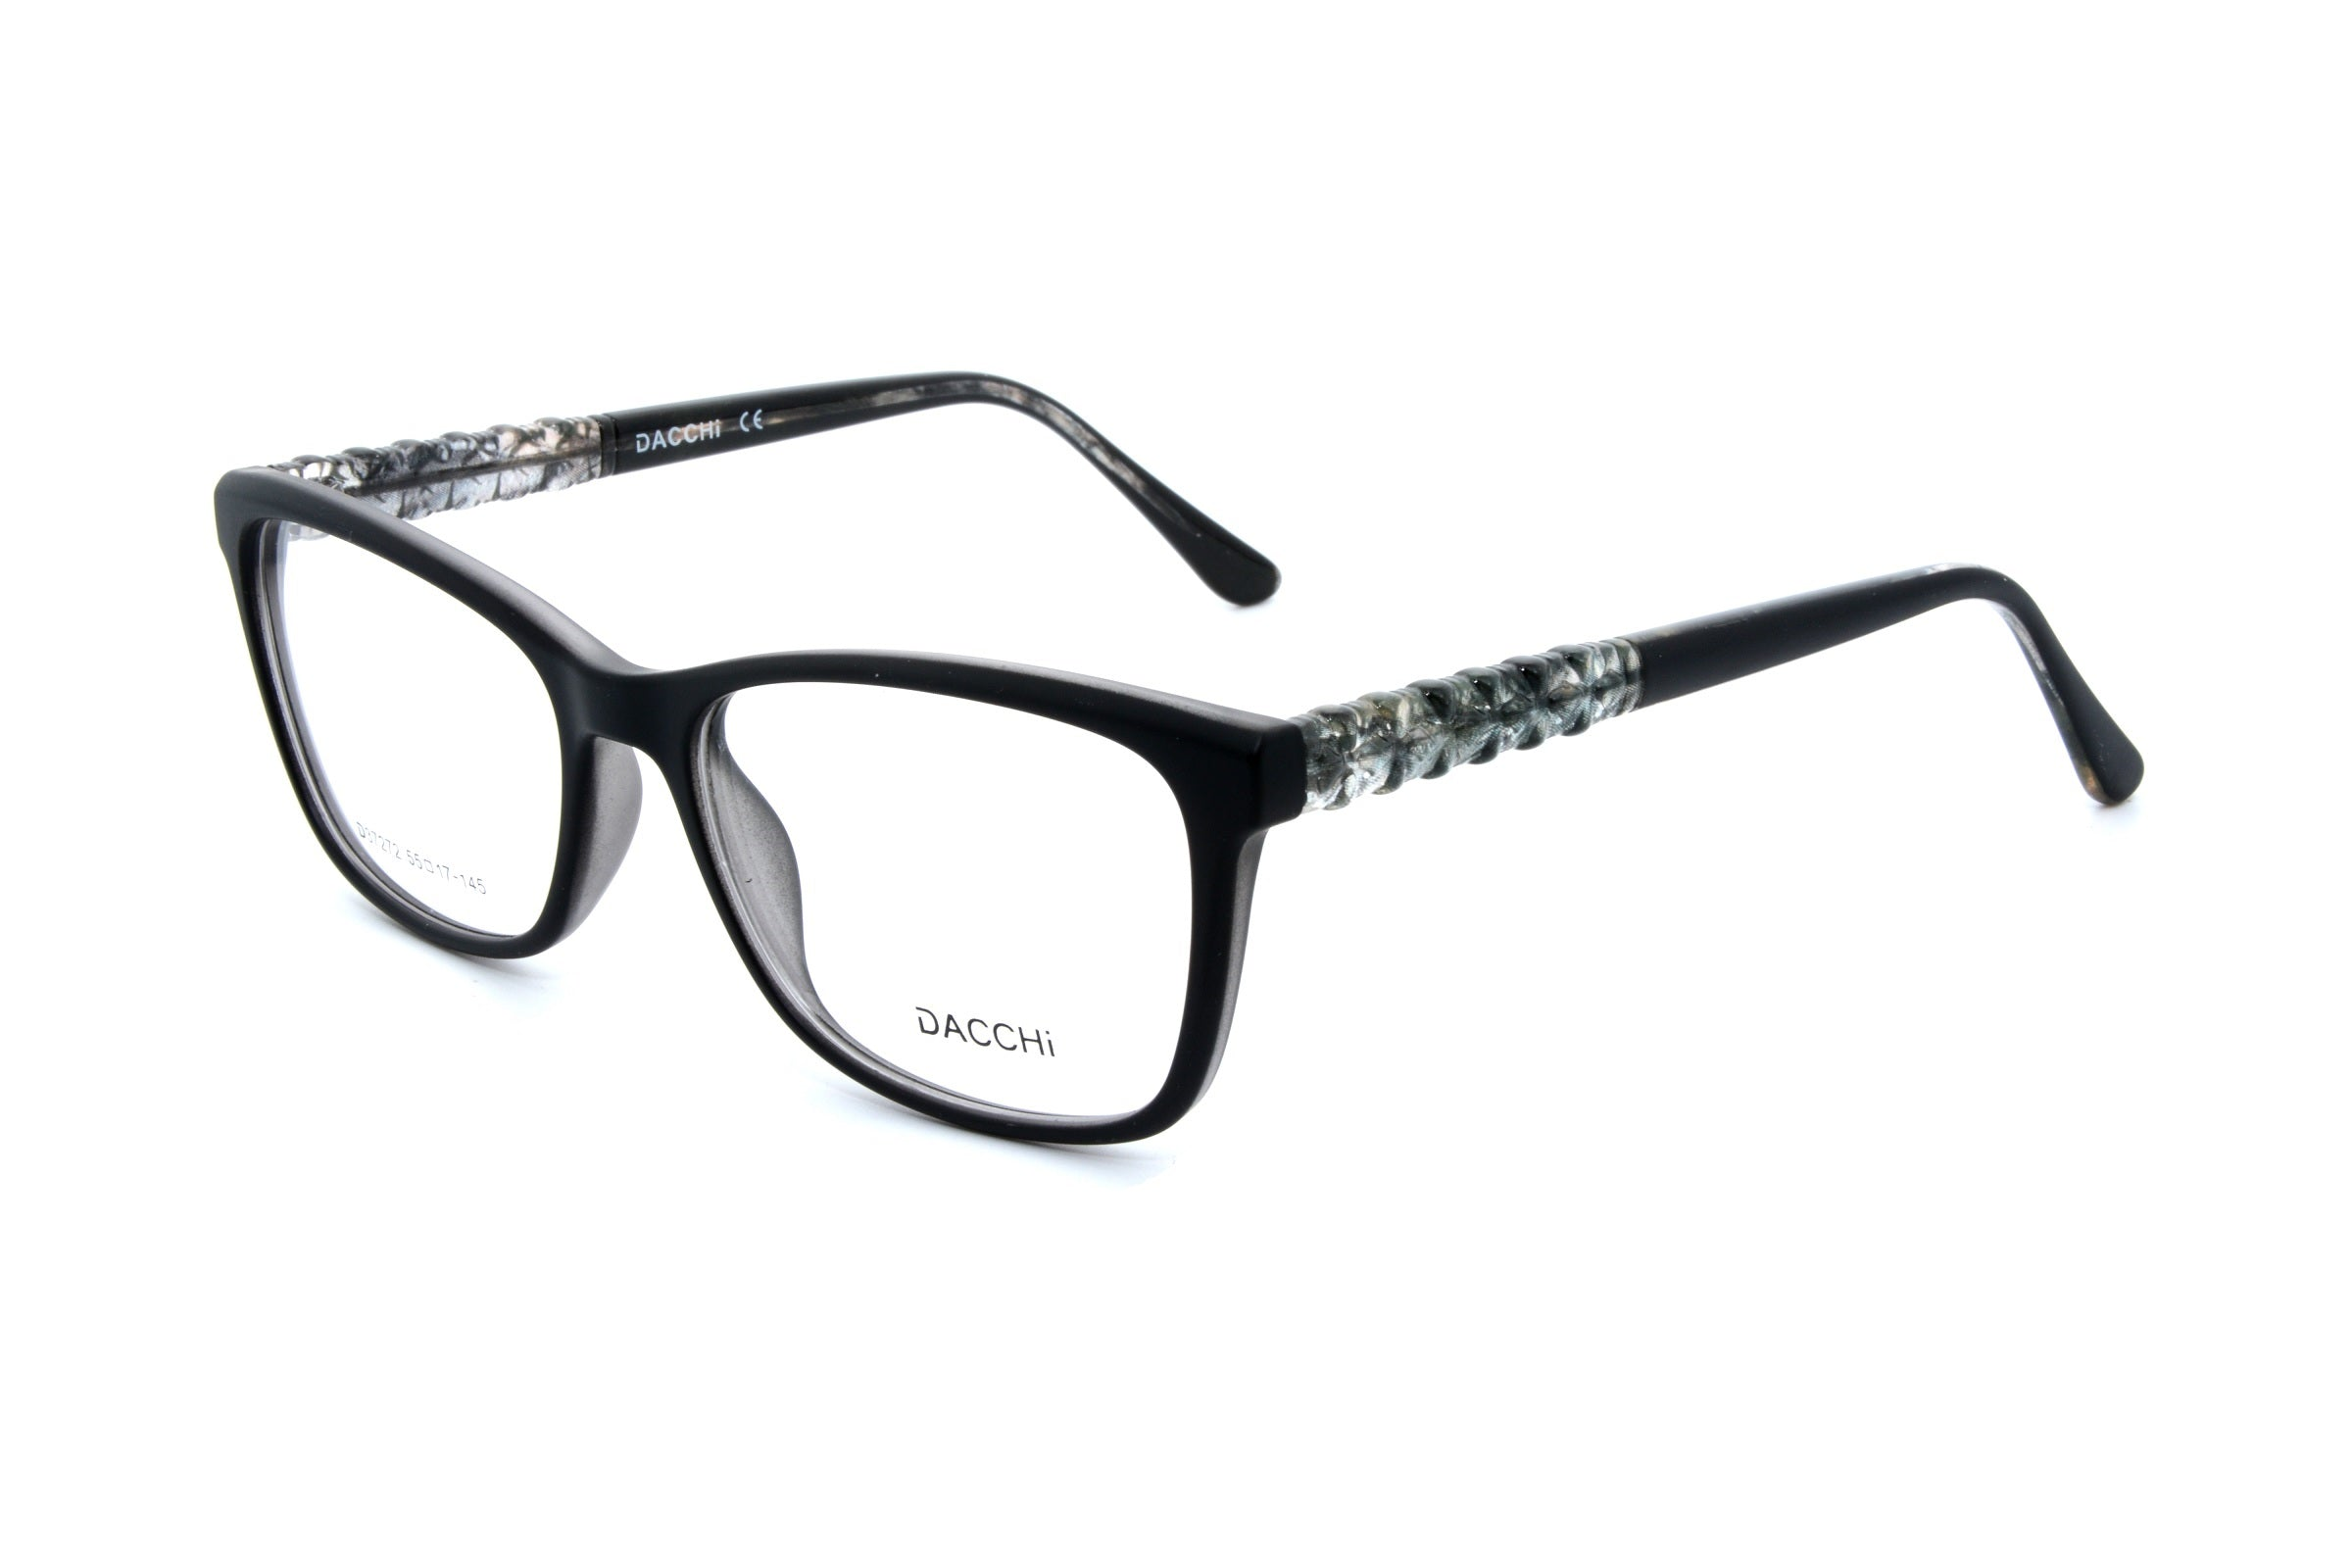 Dacchi eyewear 37272, C1 - Optics Trading